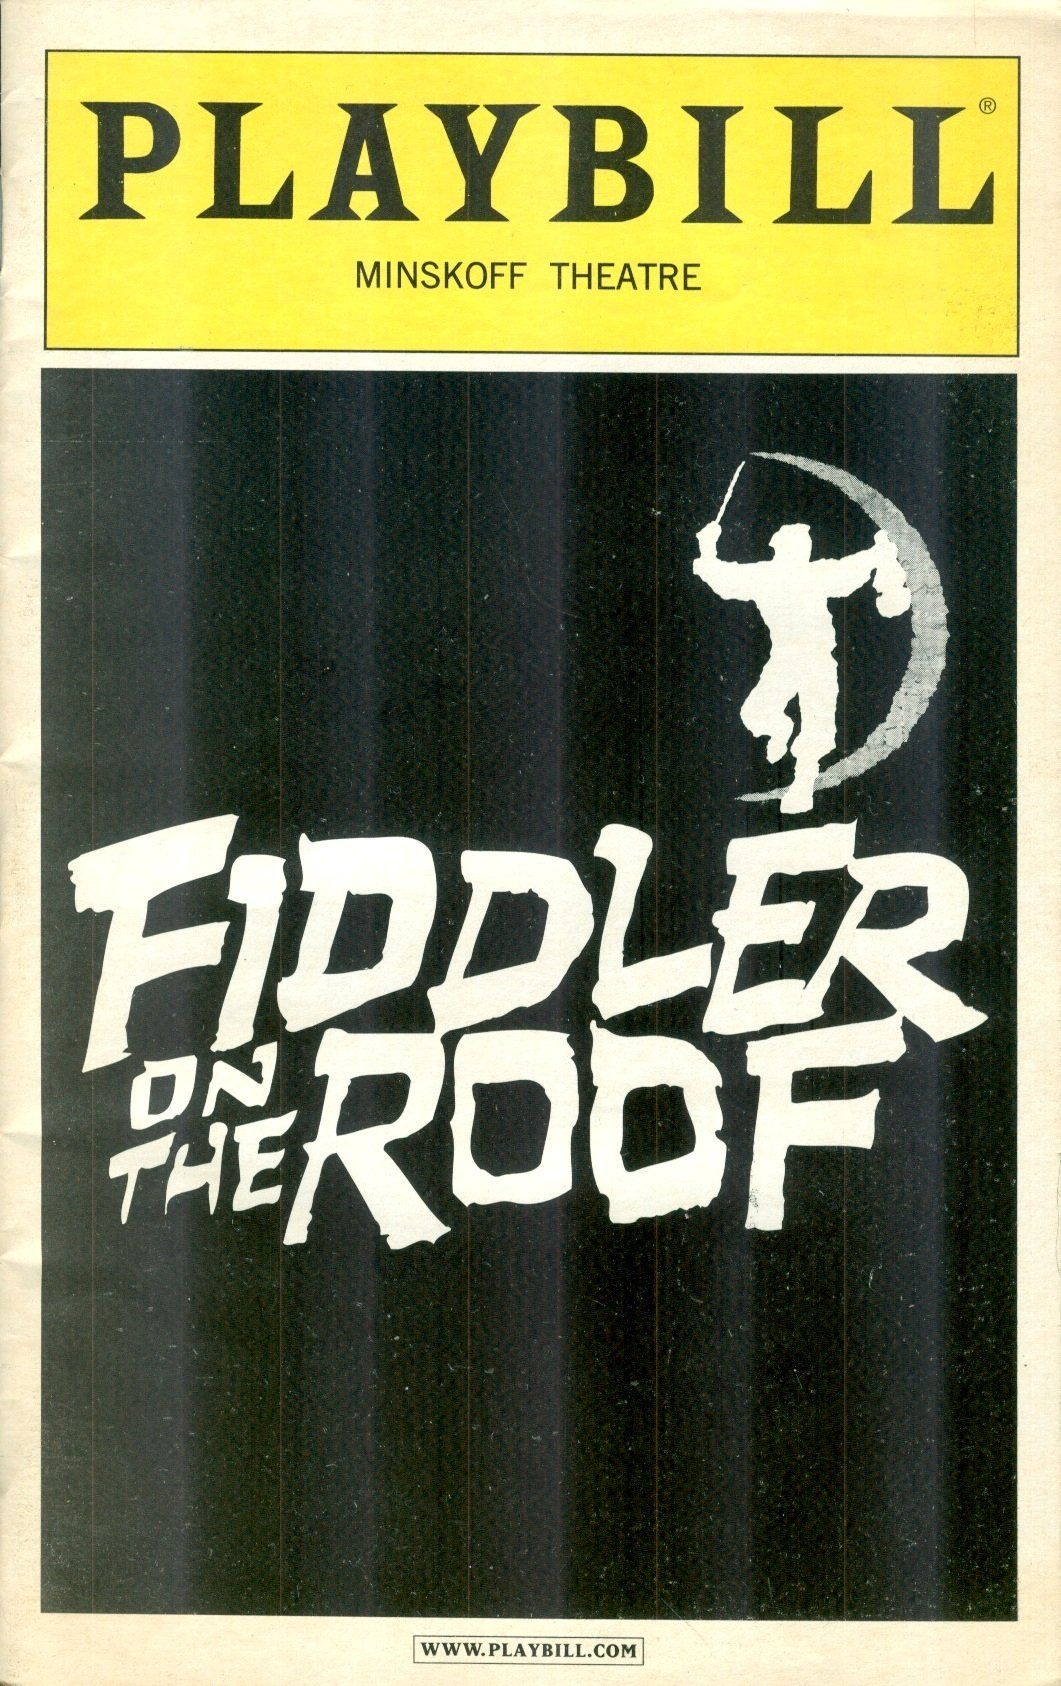 Fiddler on the roof playbill google search quilts kids pinterest fiddler on the roof playbill google search fandeluxe Image collections